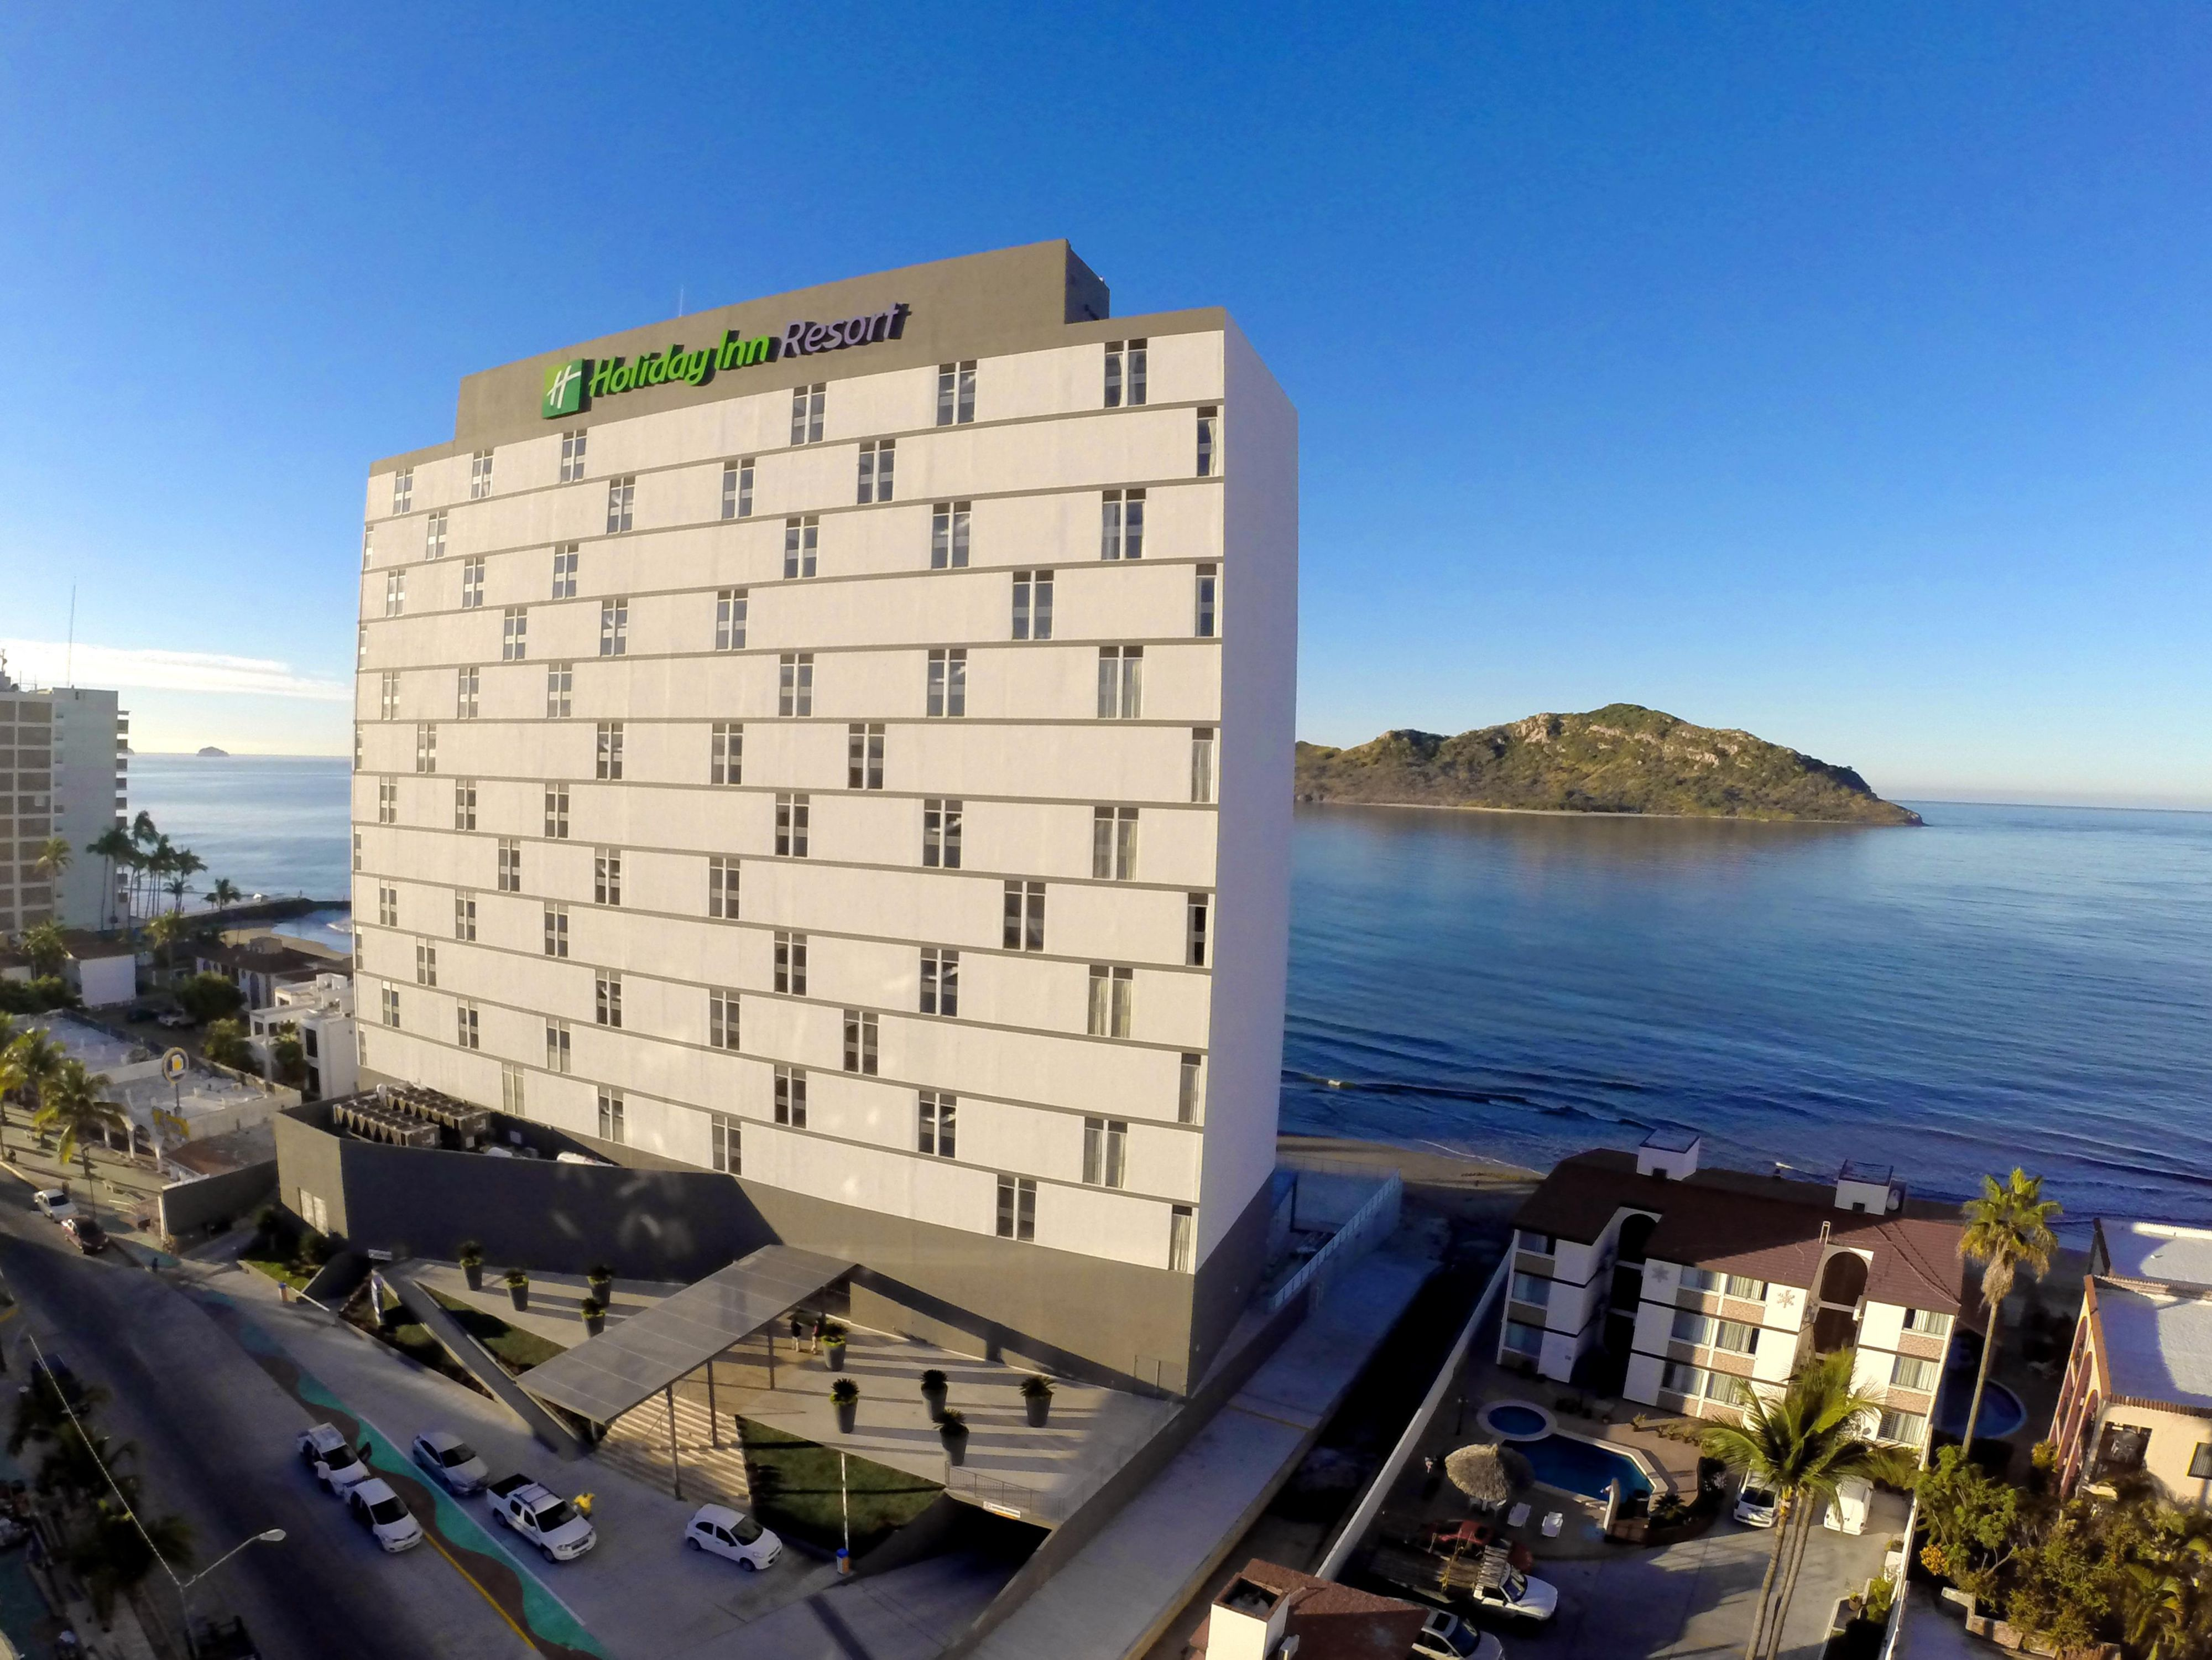 Holiday inn resort mazatlan hotel by ihg for Hotel en celestino gasca sinaloa